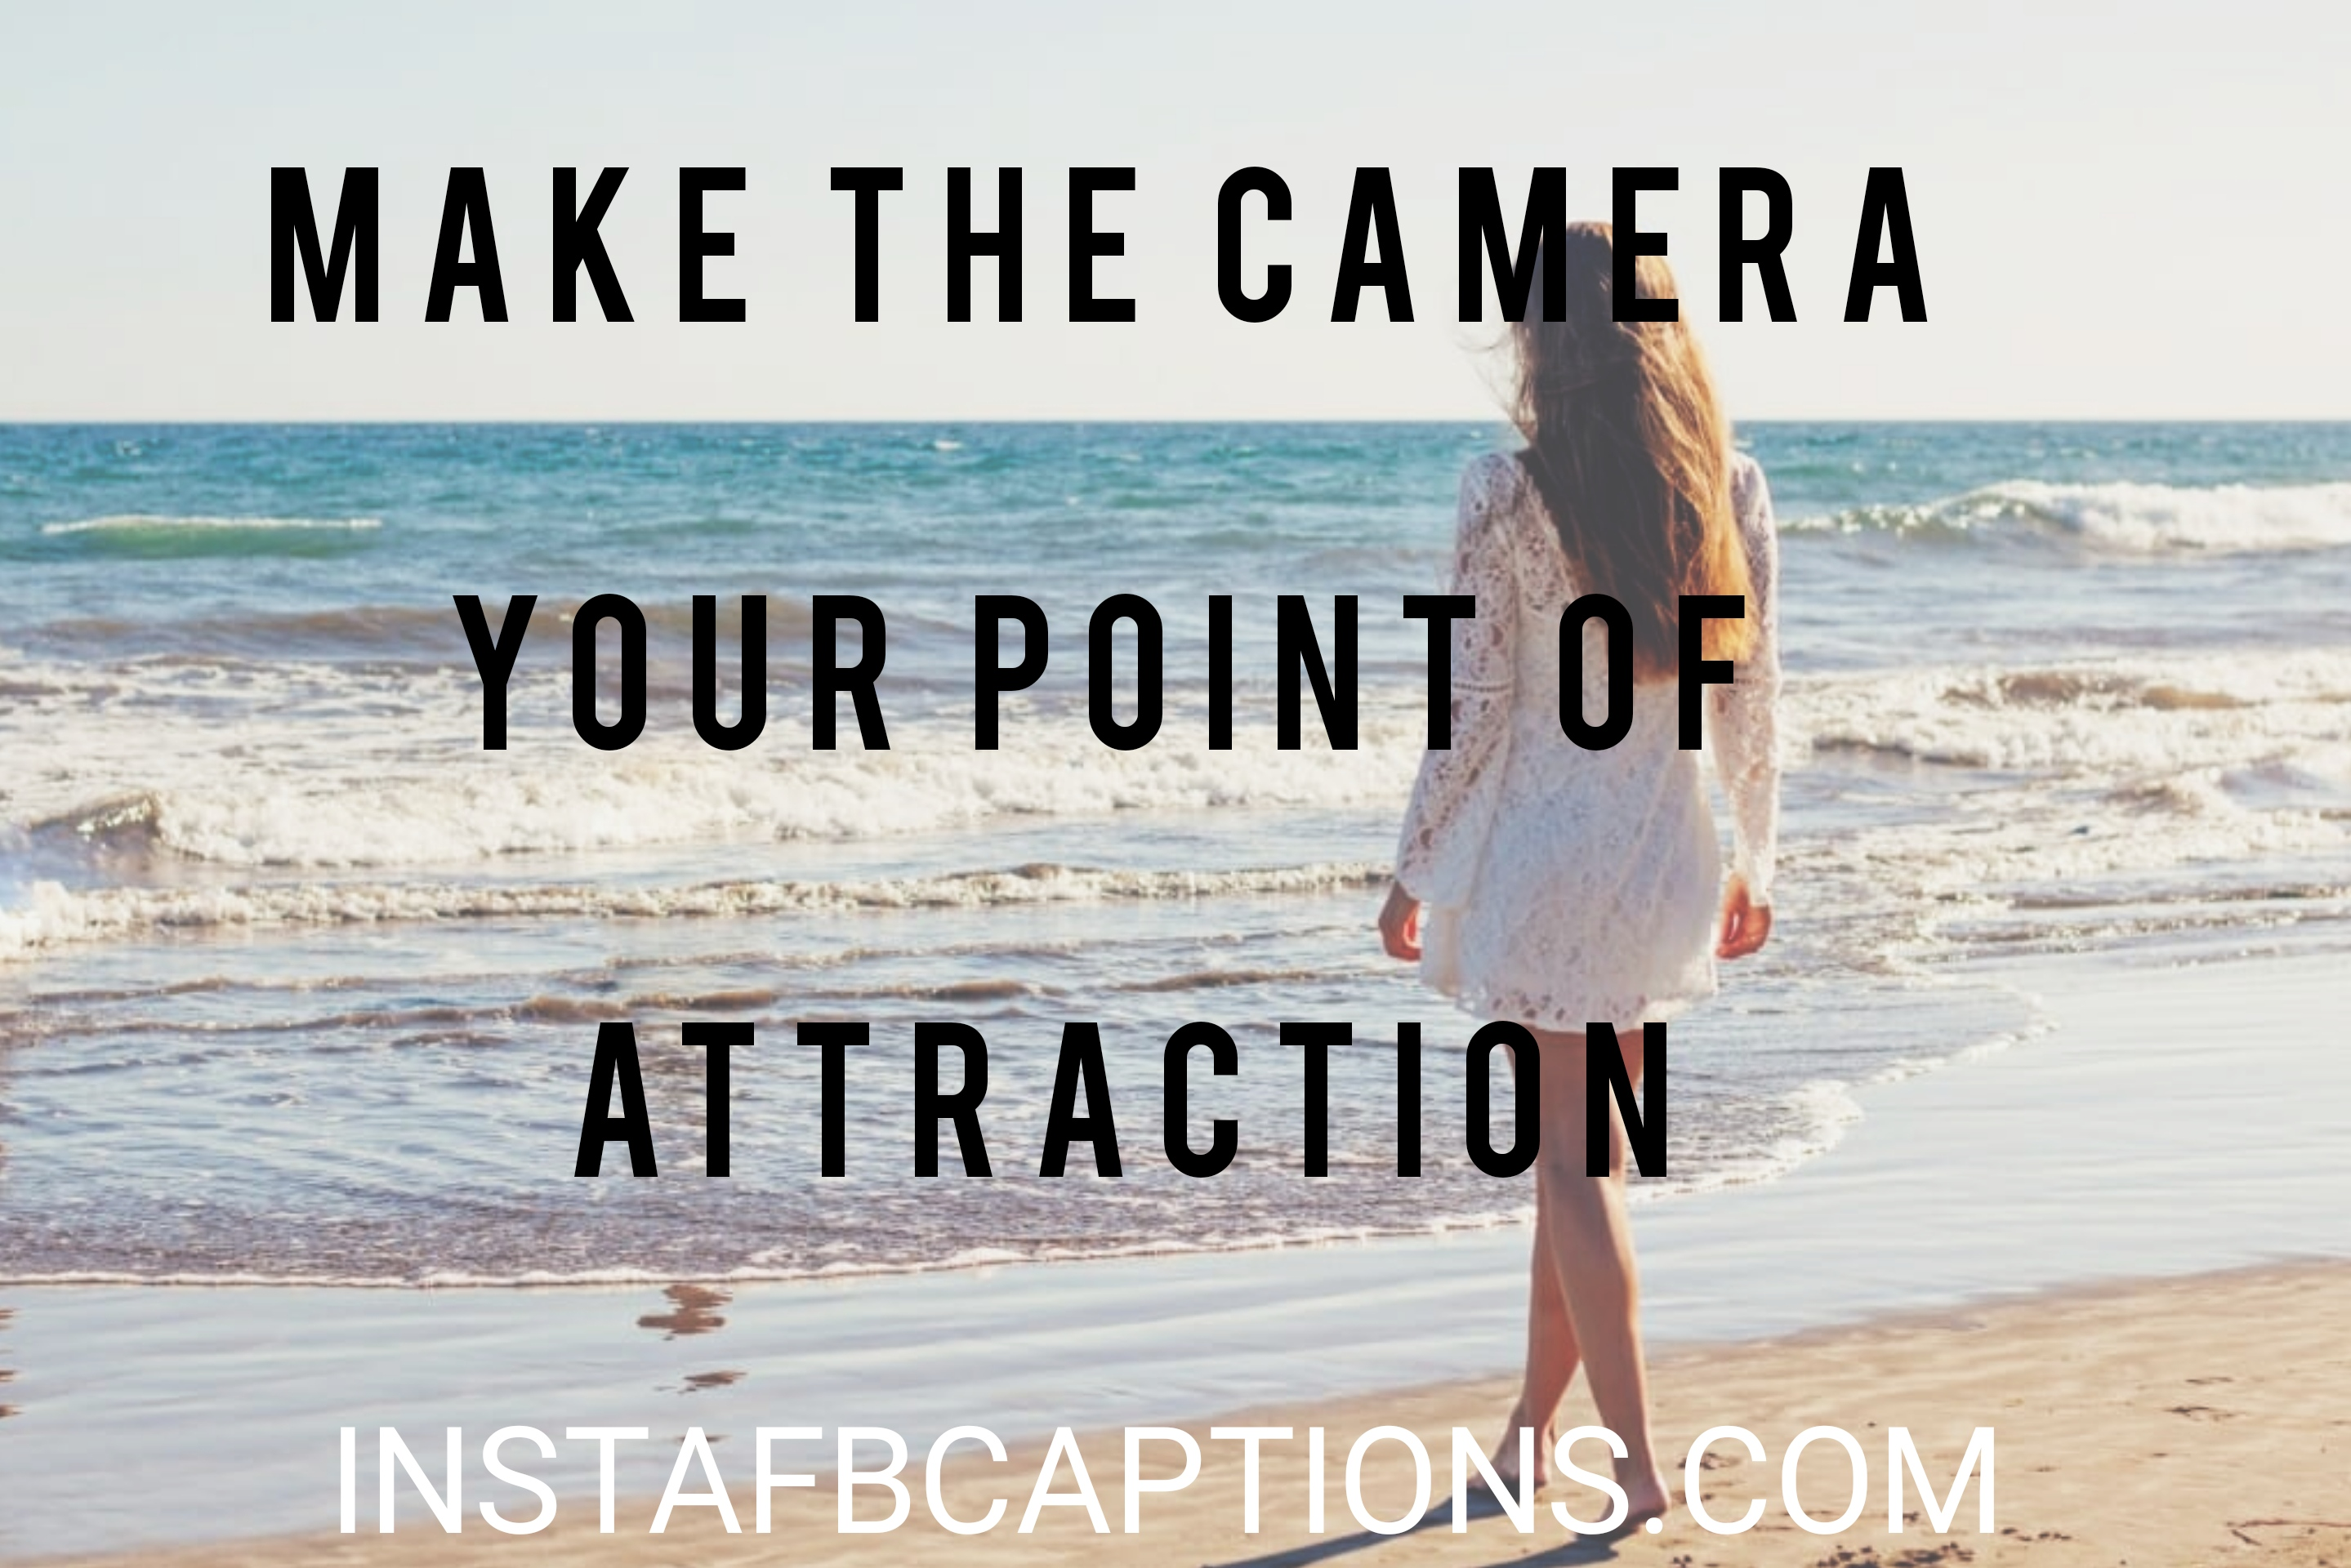 Make The Camera Your Point Of Attractio  - Make the camera your point of attraction - Standing pose captions|(side look attitude model)